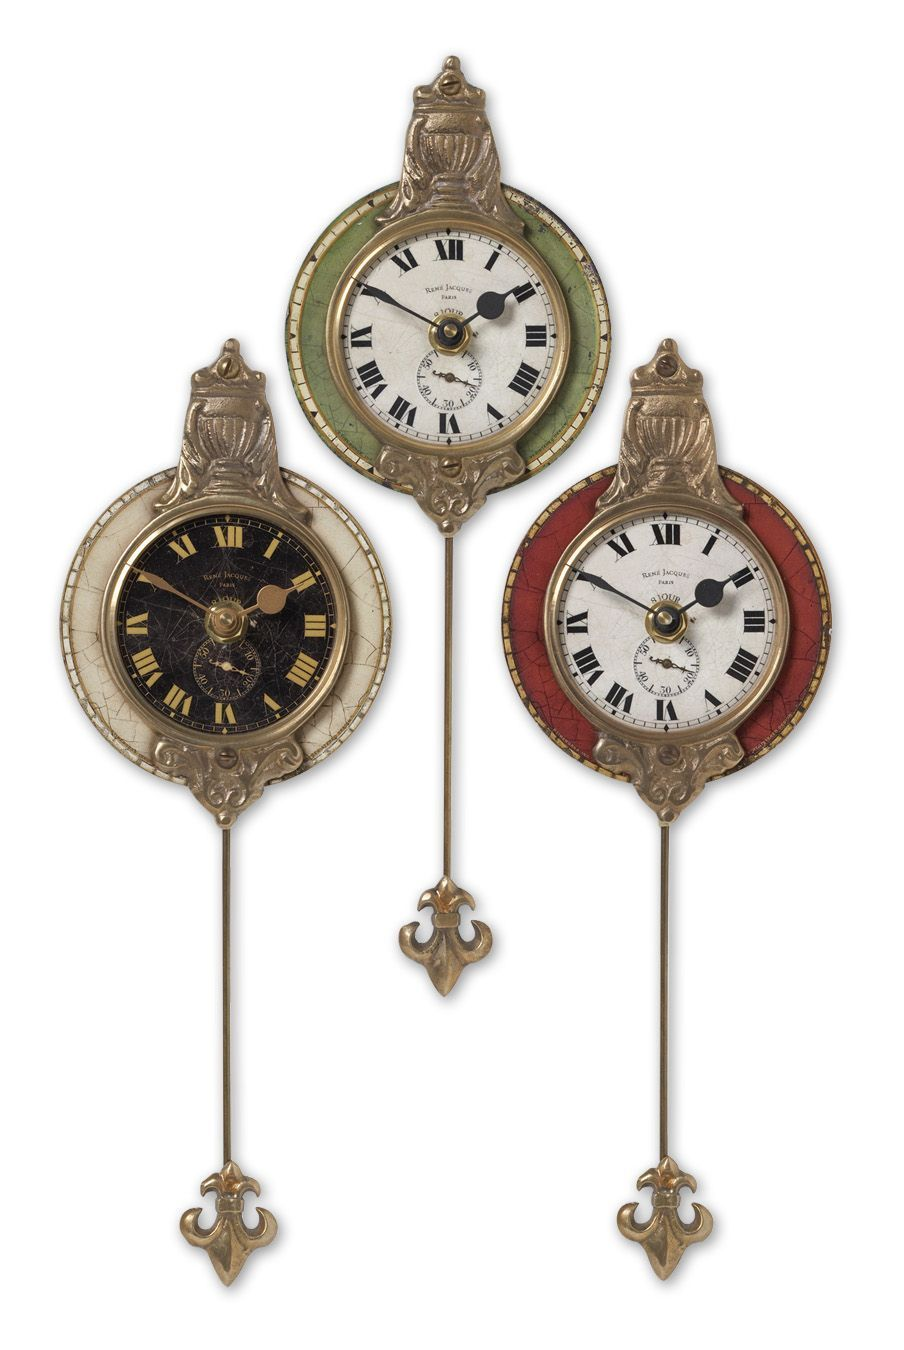 Wilkinson's House of Lighting in St.George, Utah, United States, Uttermost 06046, Uttermost Monarch Wall Clock Set/3, Monarch